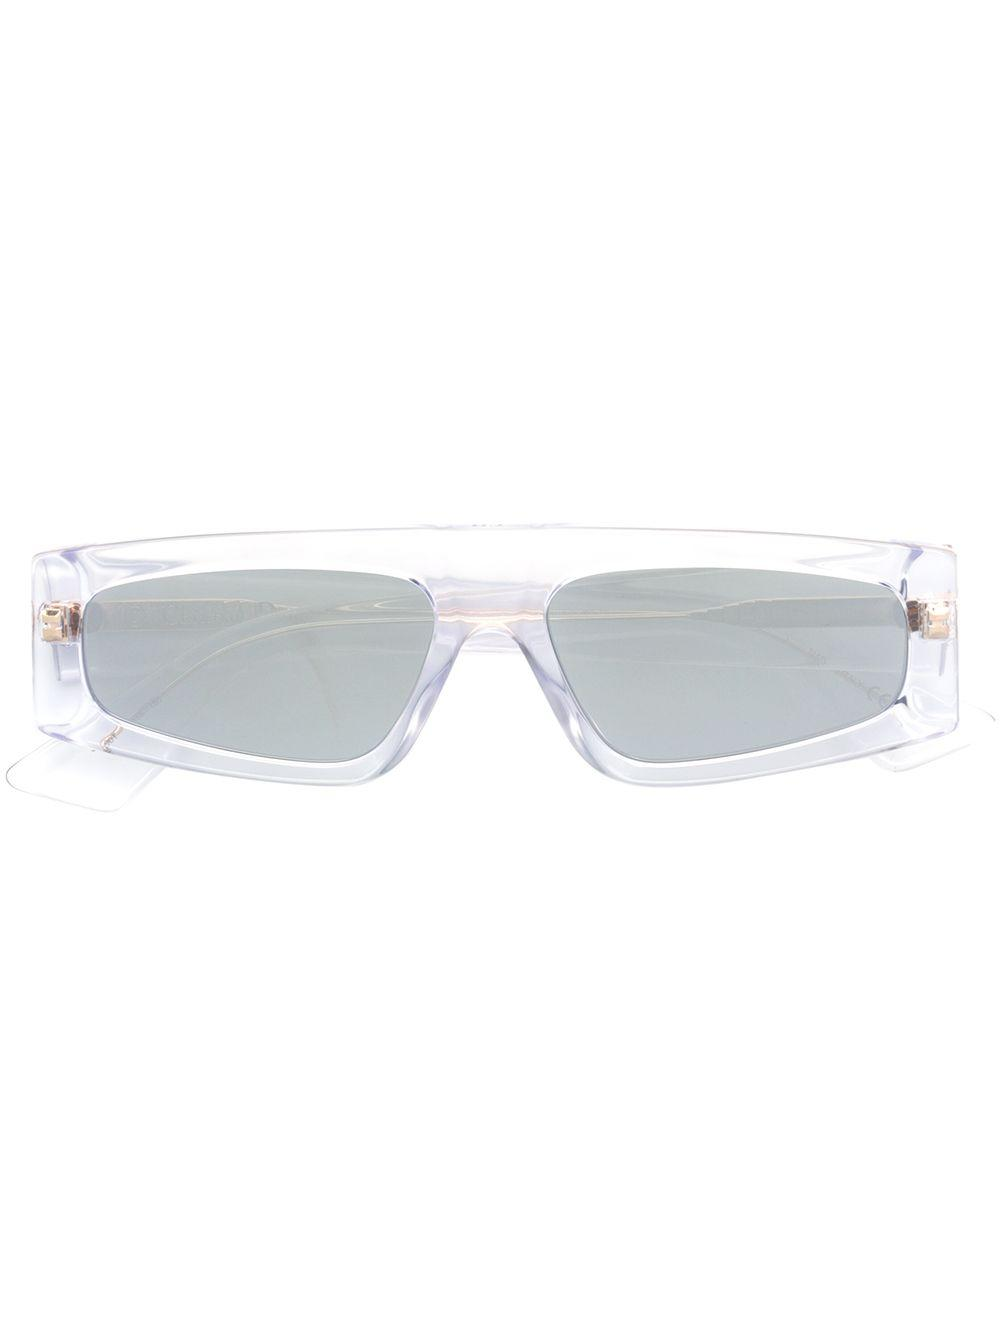 6d13a976ee2 These black acrylic embellished flat-bridged sunglasses from Dior Eyewear  feature straight arms with curved tips and tinted lenses.